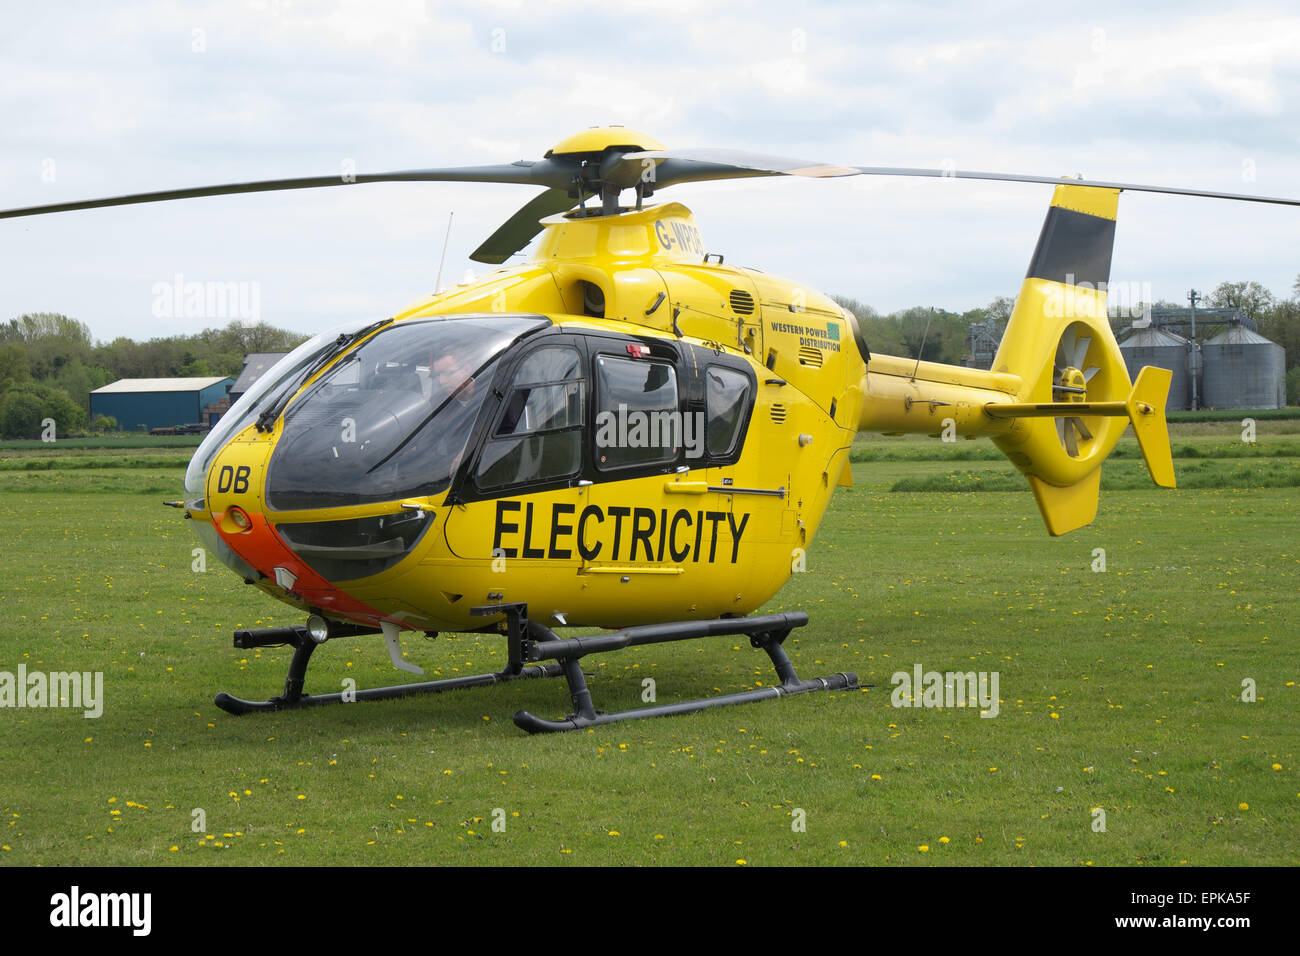 WPD Western Power Distribution EC135 helicopter used to check electricity power supply wires lines and pylons in - Stock Image